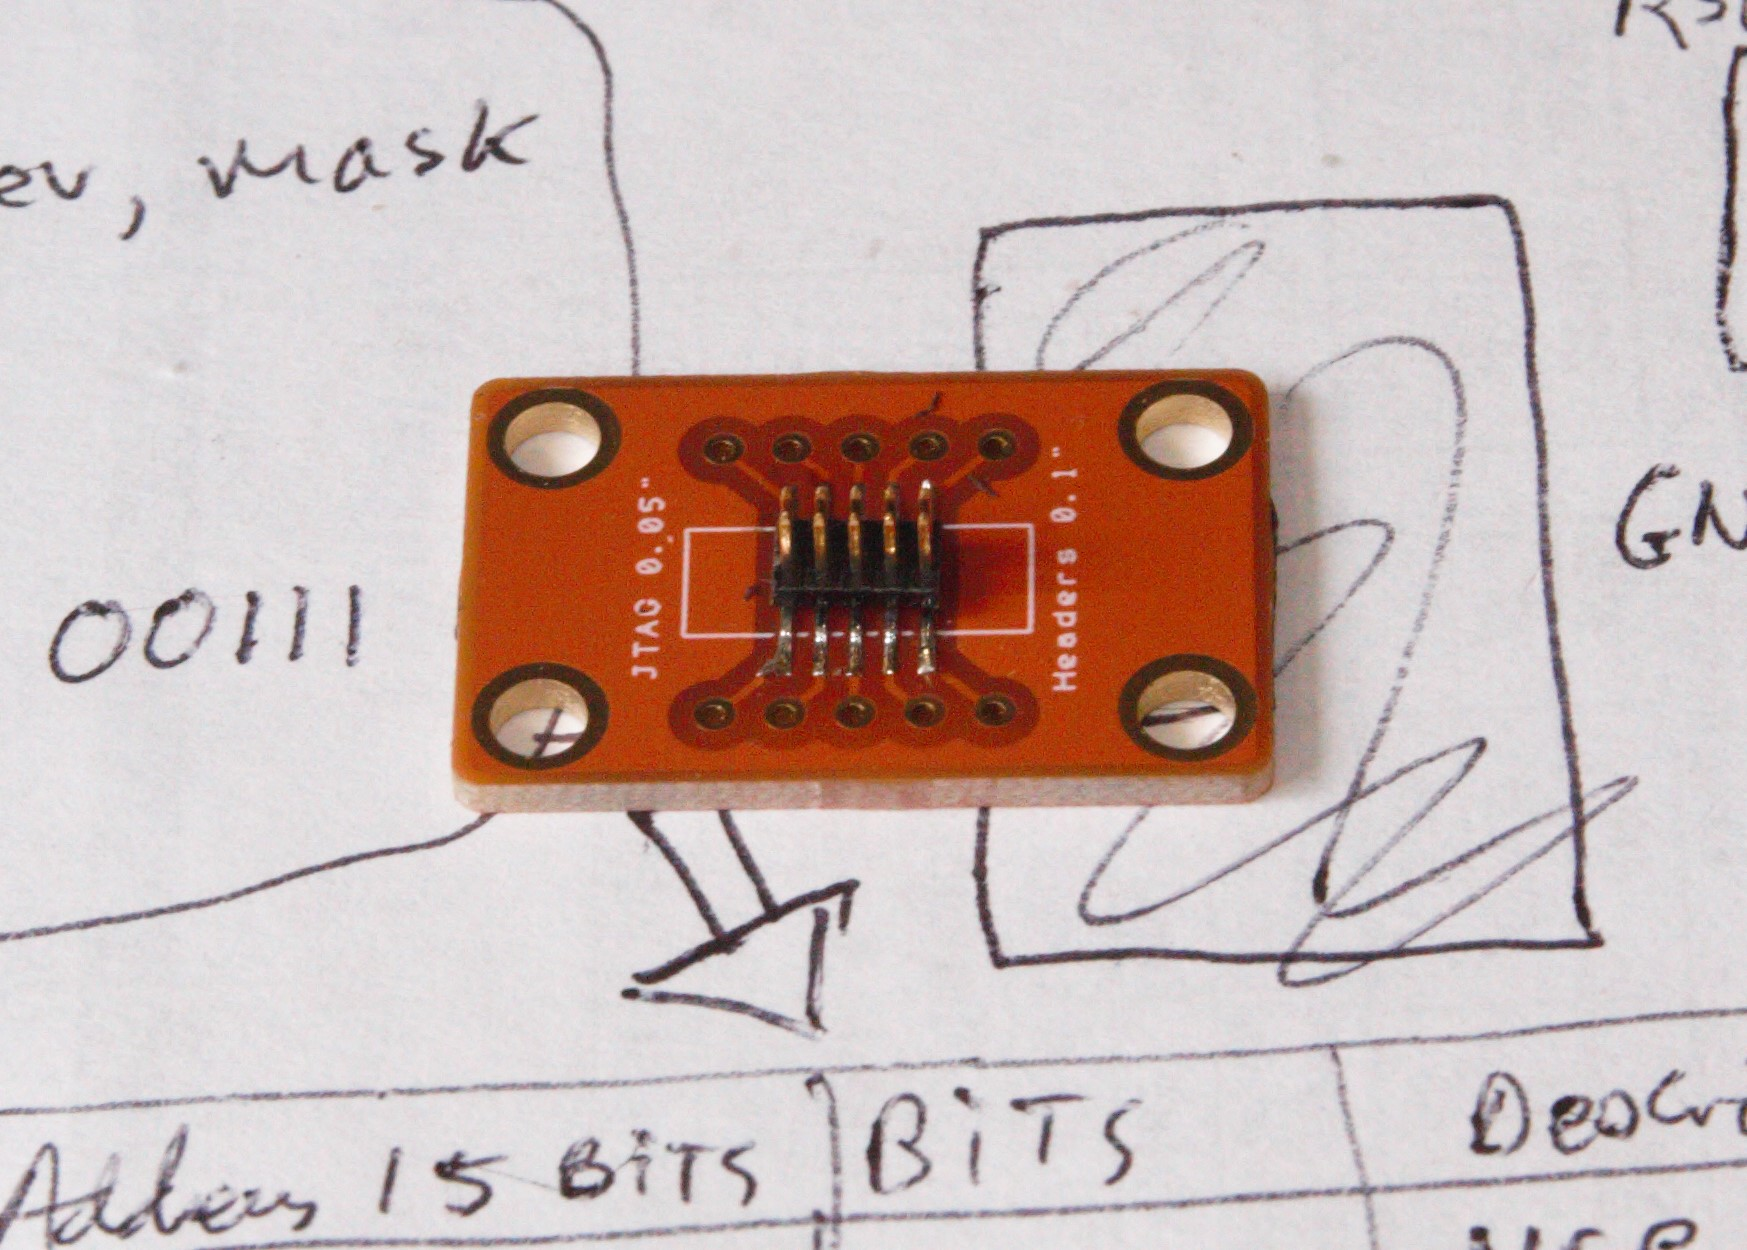 Cell Phone 4G LTE Repeater / Booster / Femtocell | Hackaday io